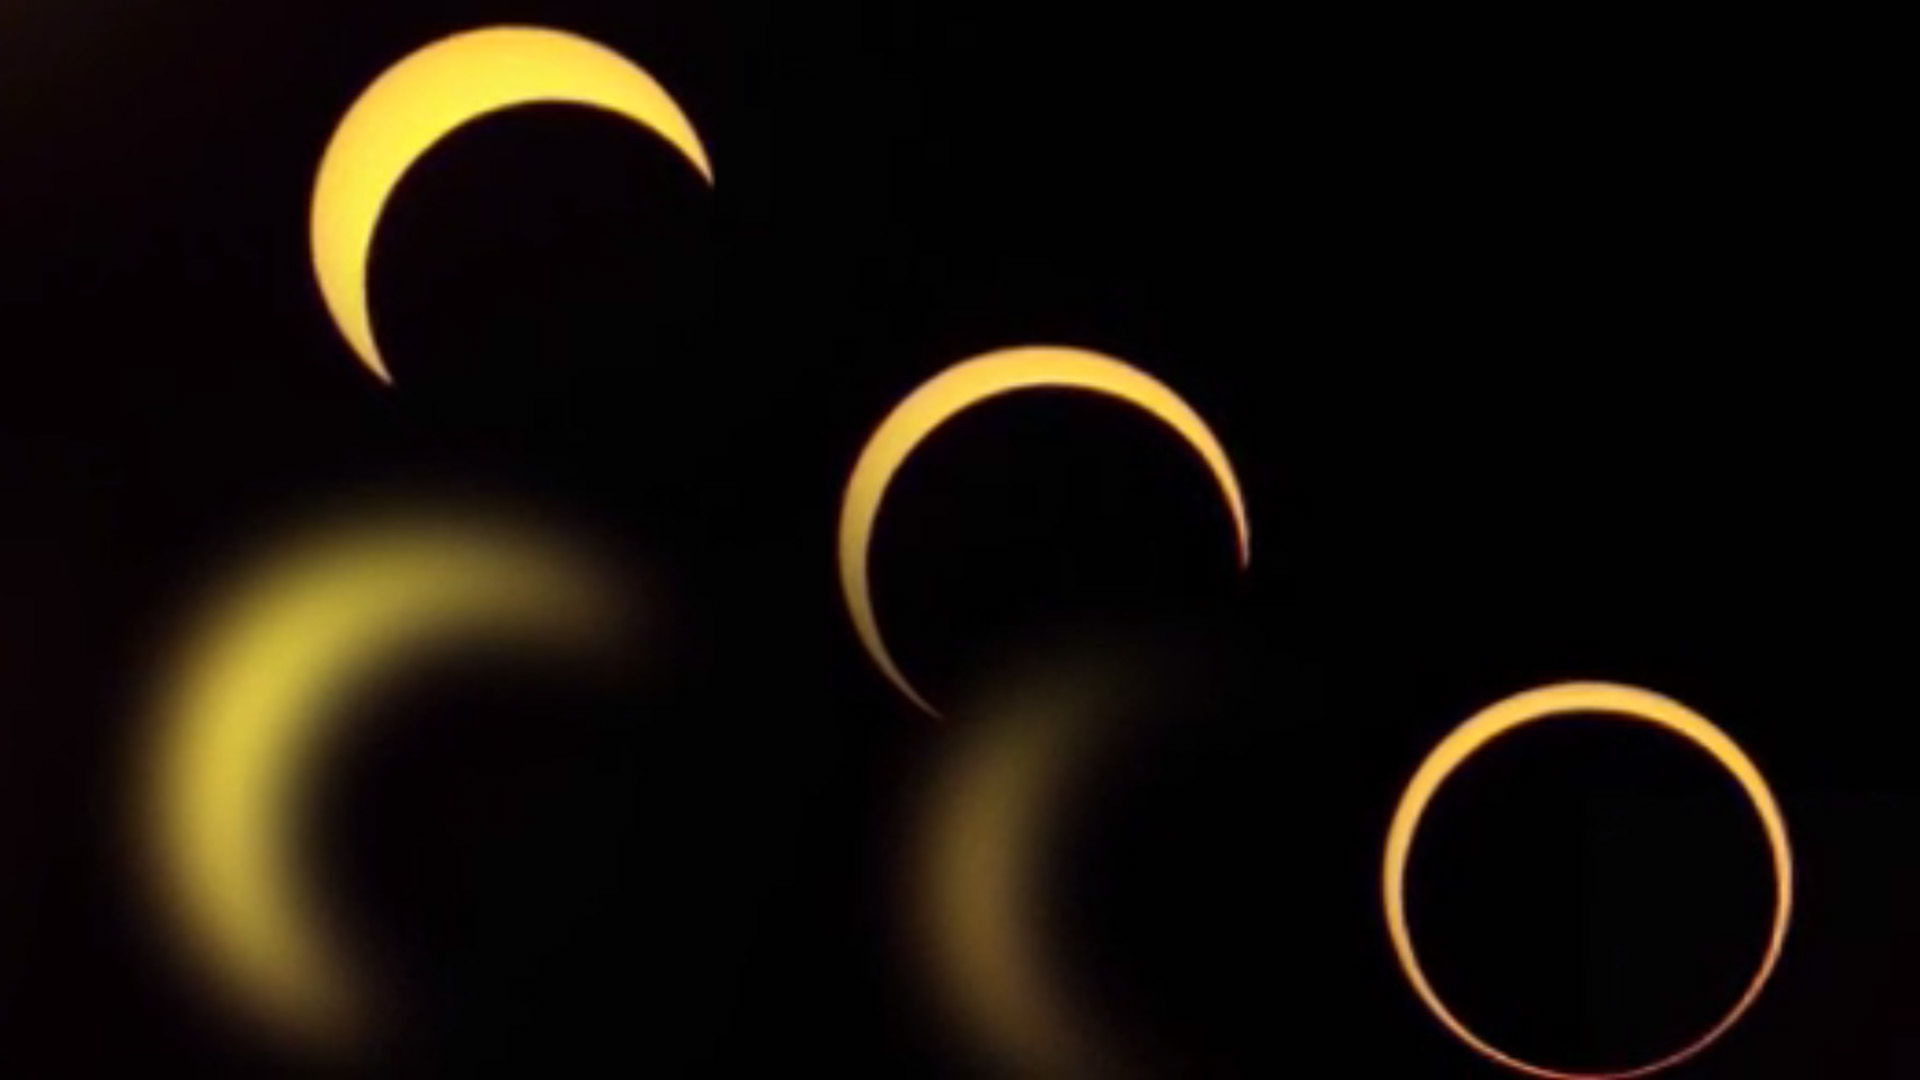 eclipse_1503263087865-159532.jpg12712658